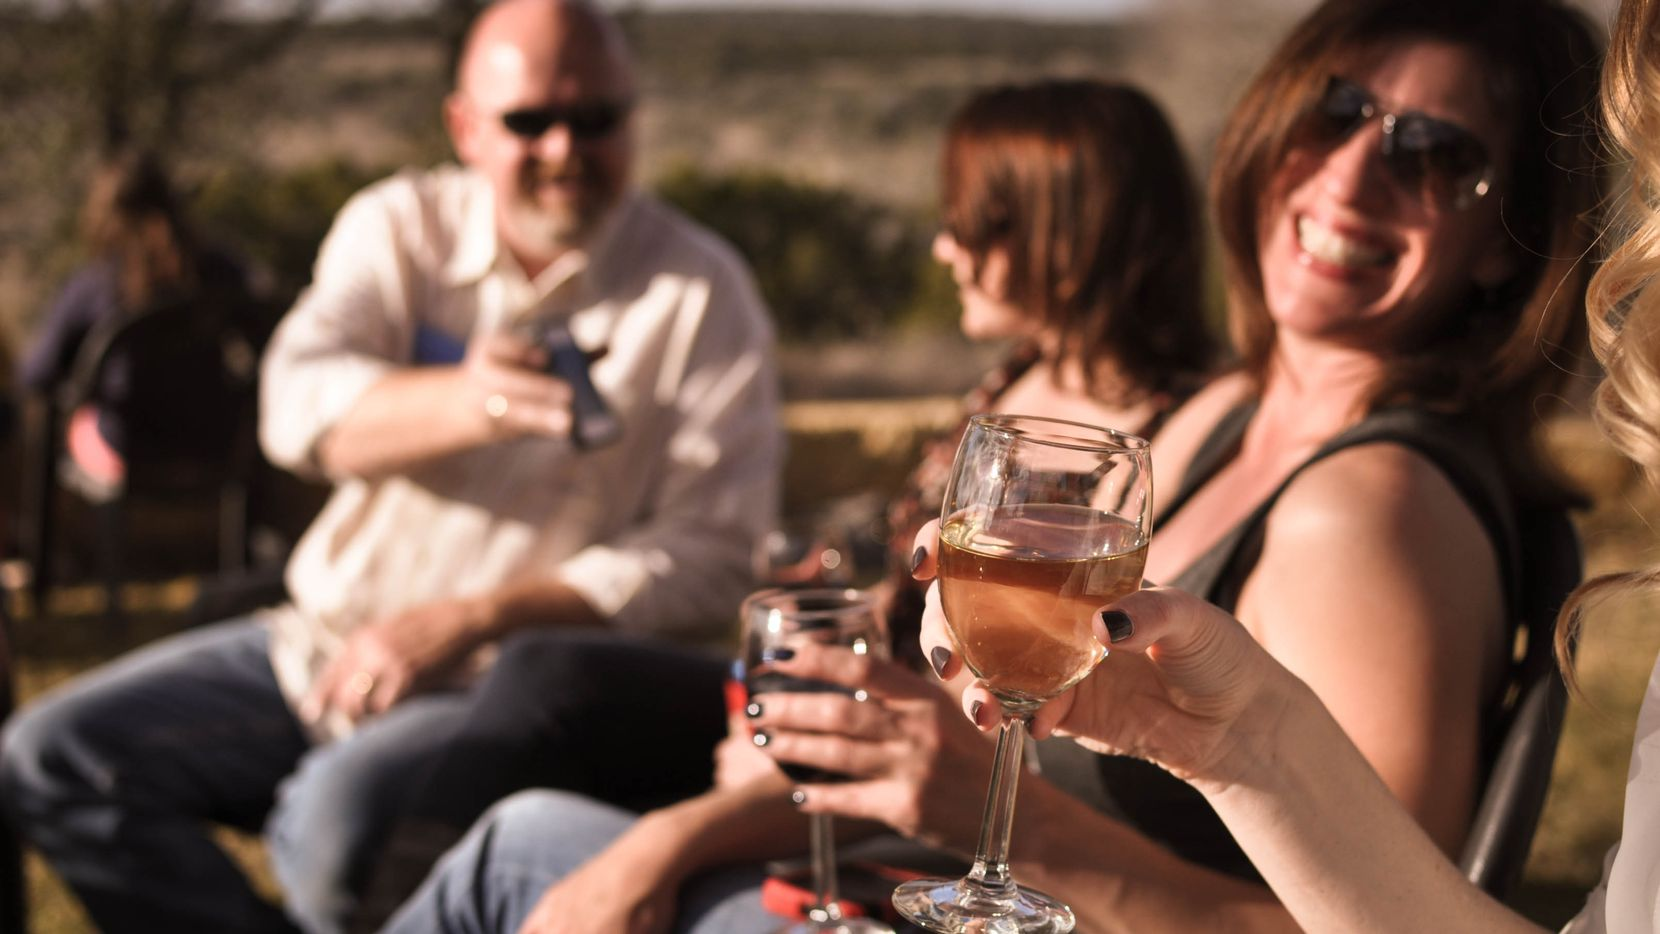 Groups of friends and corporate gatherings charter the Heart of Texas Wine Tours' European mini-buses for day-long trips around wineries in and near Central Texas towns like Fredericksburg, Driftwood, Dripping Springs, Lampasas and Marble Falls.